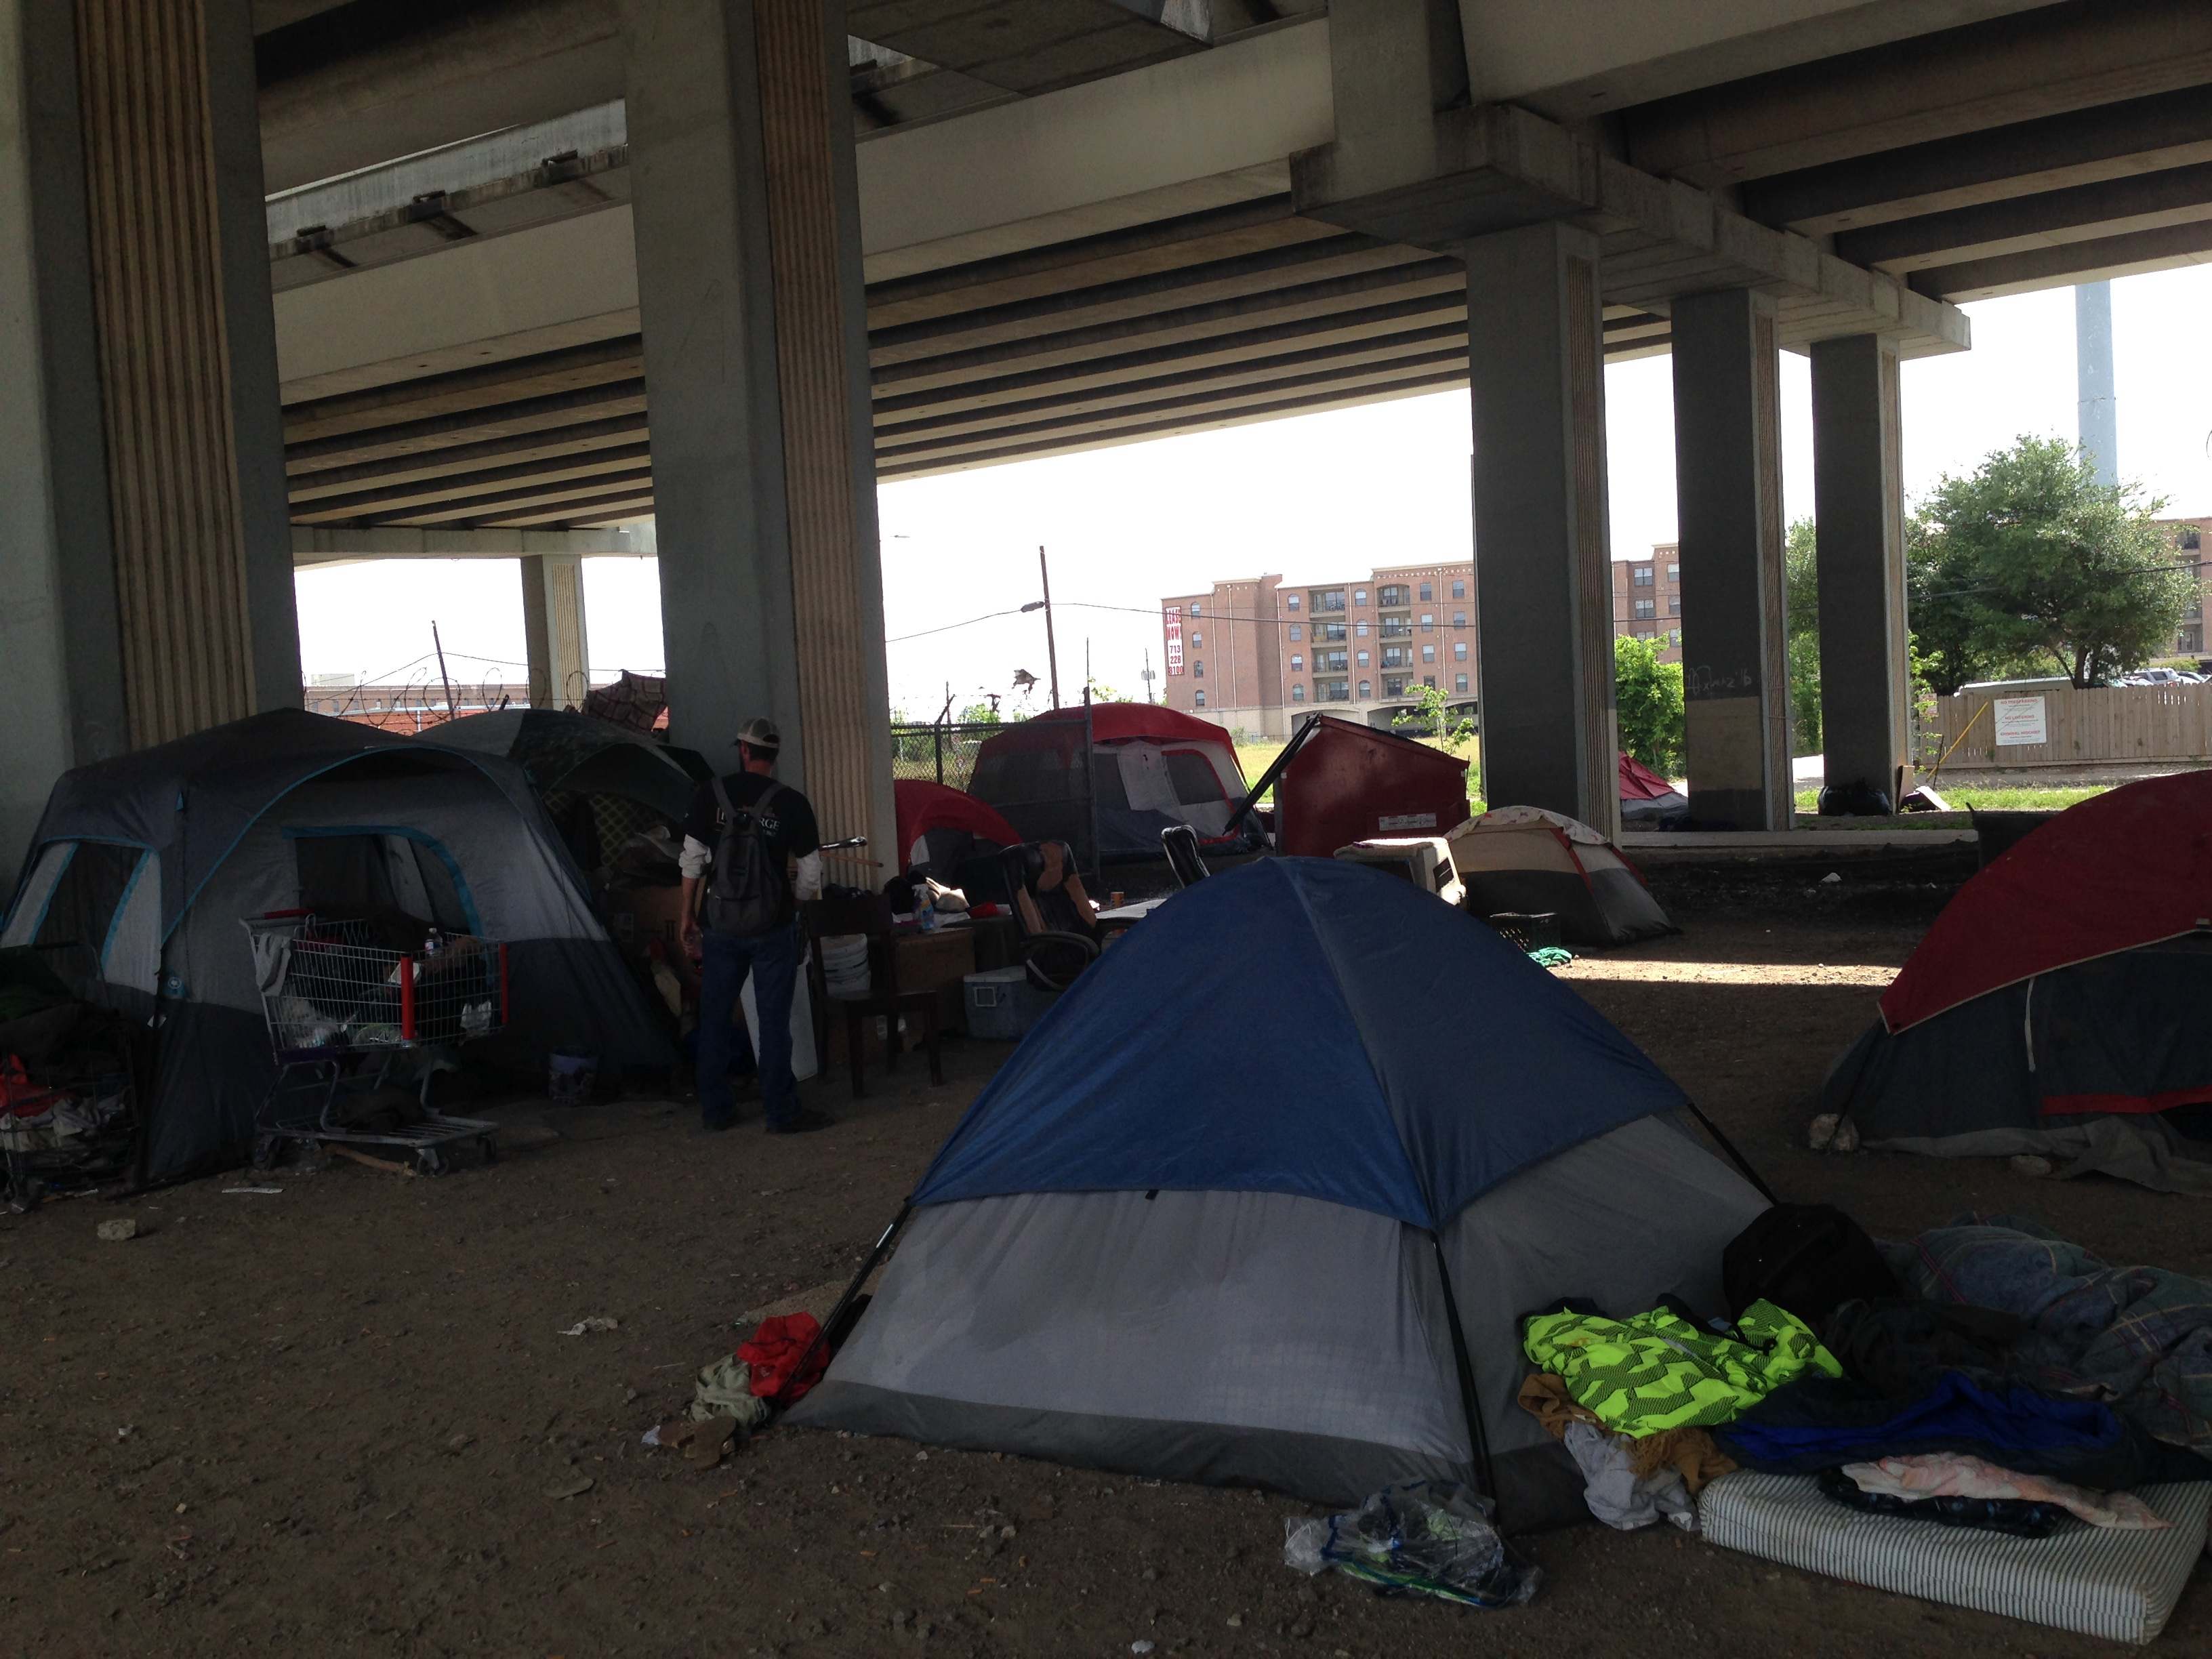 Boost Near Me >> Houston's Ban on Homeless Camps Blocked — For Now – Houston Public Media